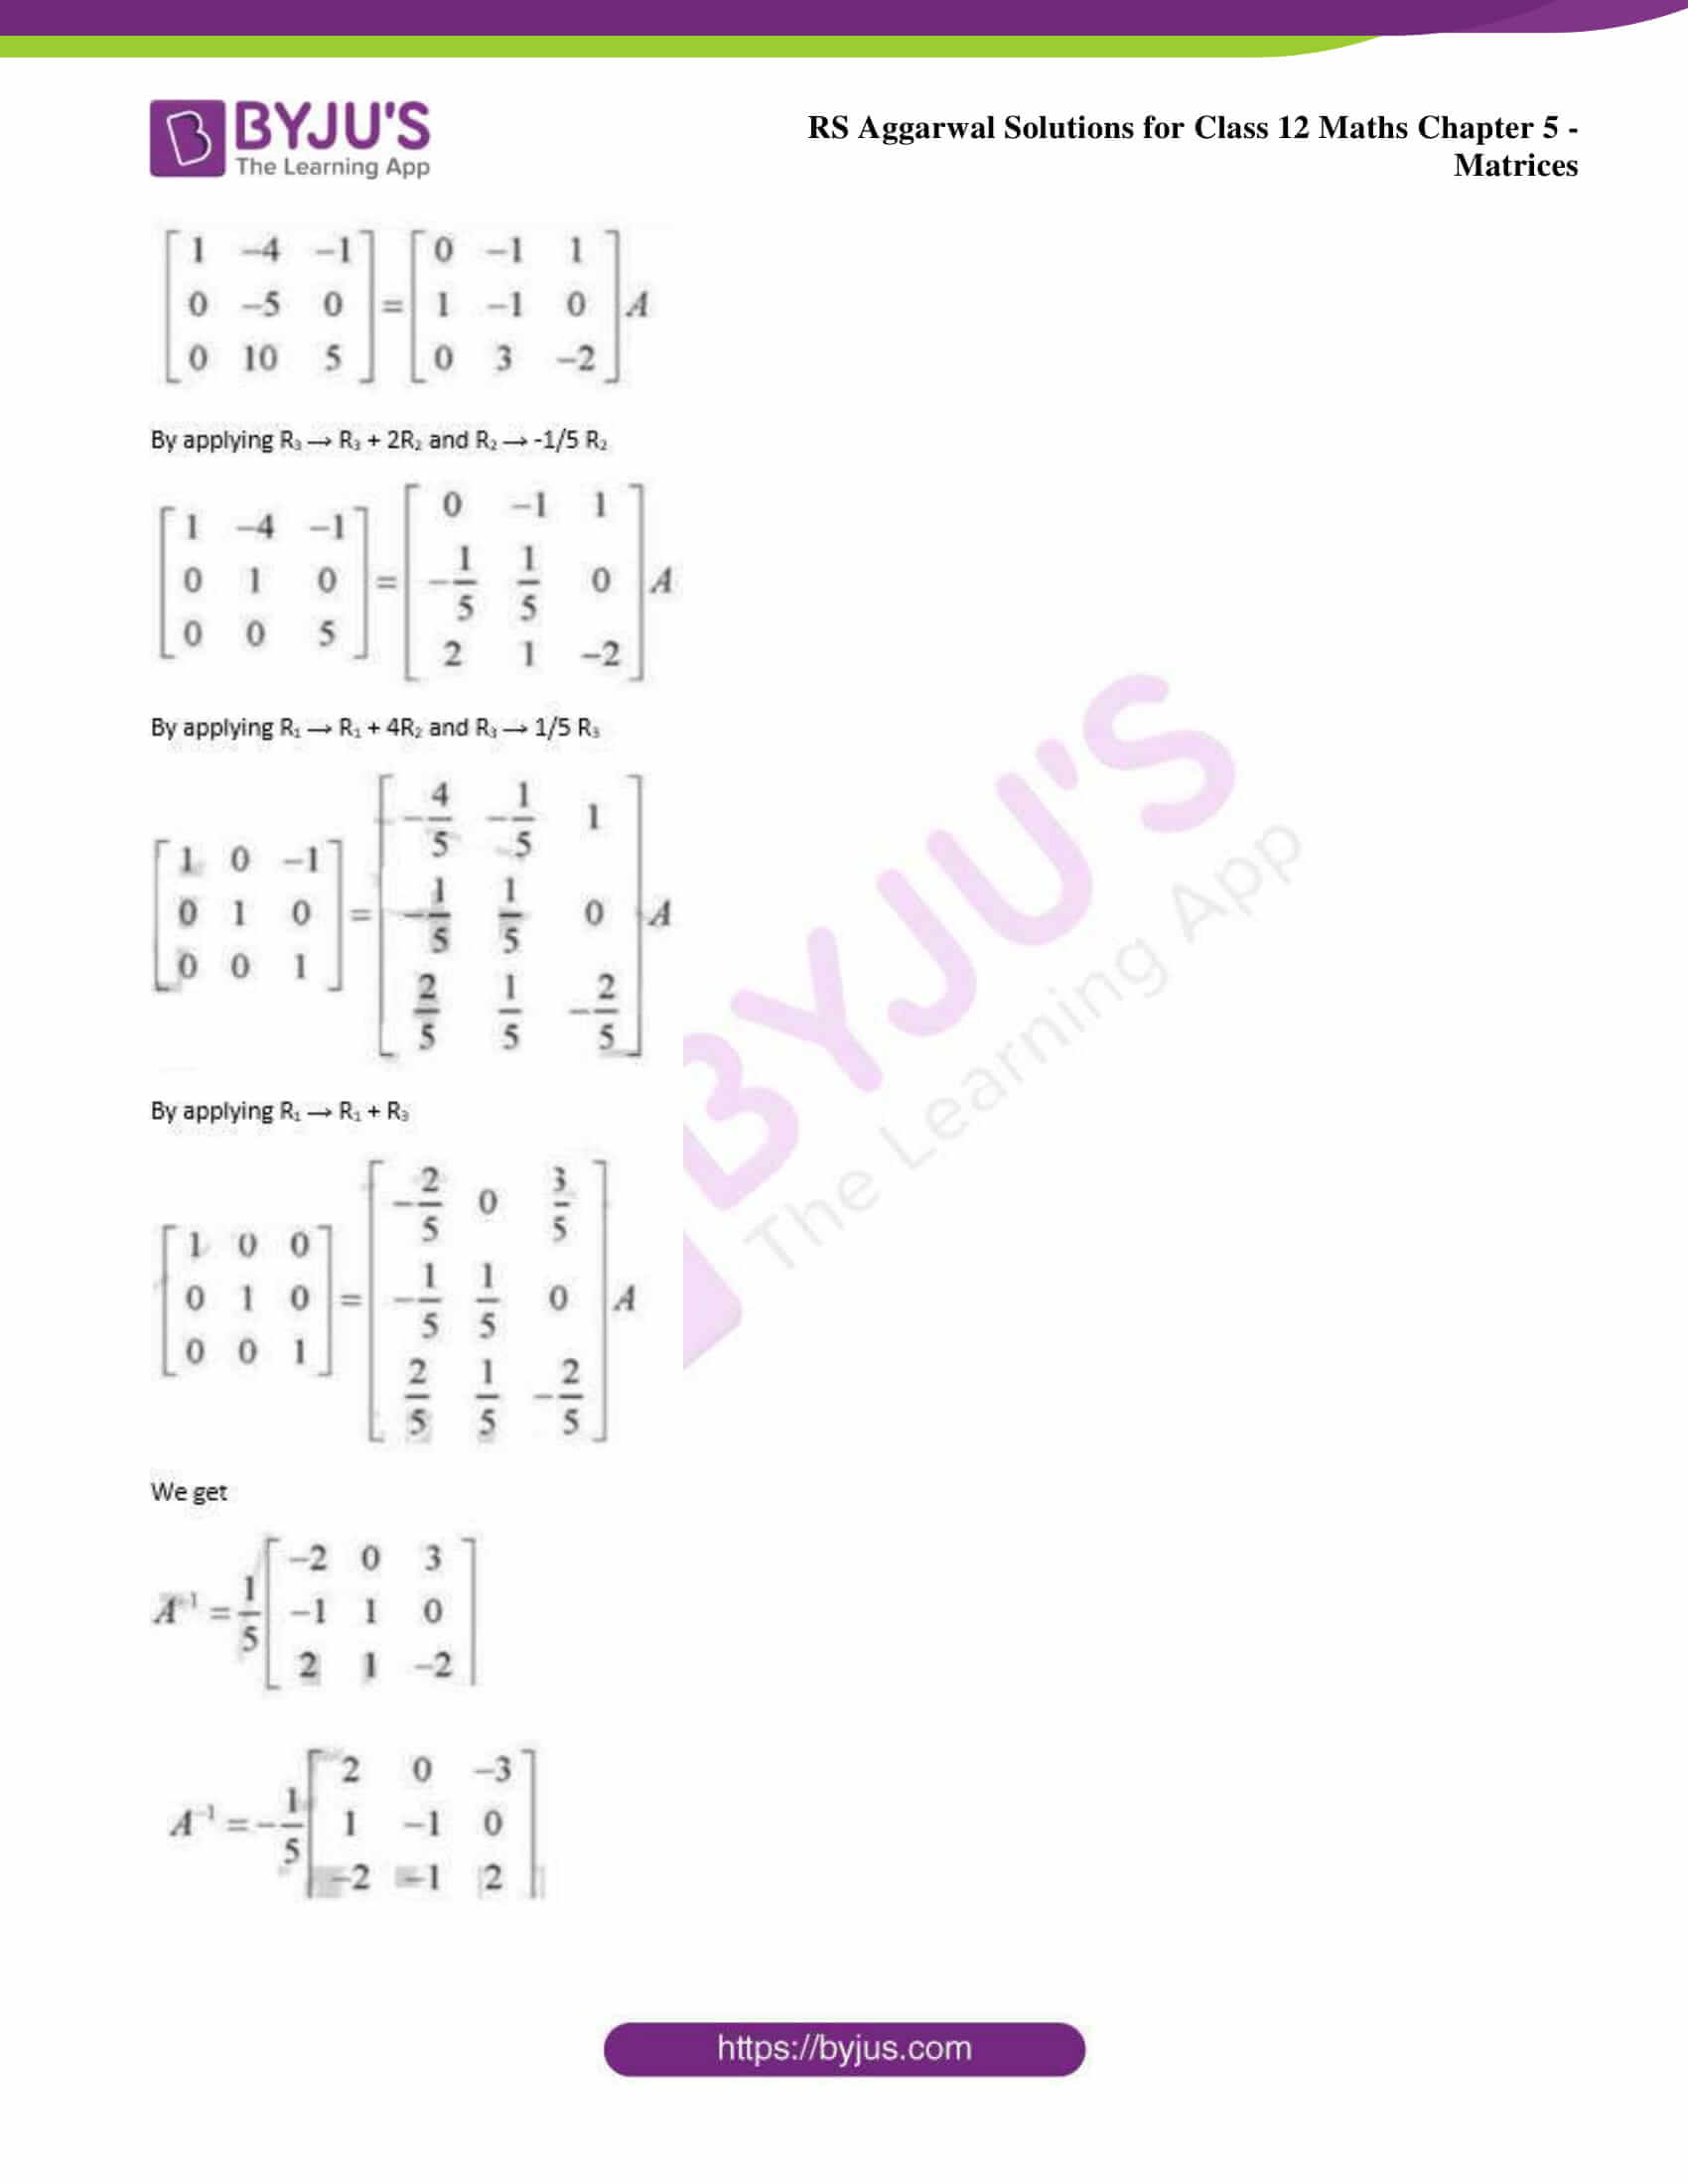 RS Aggarwal Solutions for Class 12 Chapter 5 Matrices ...